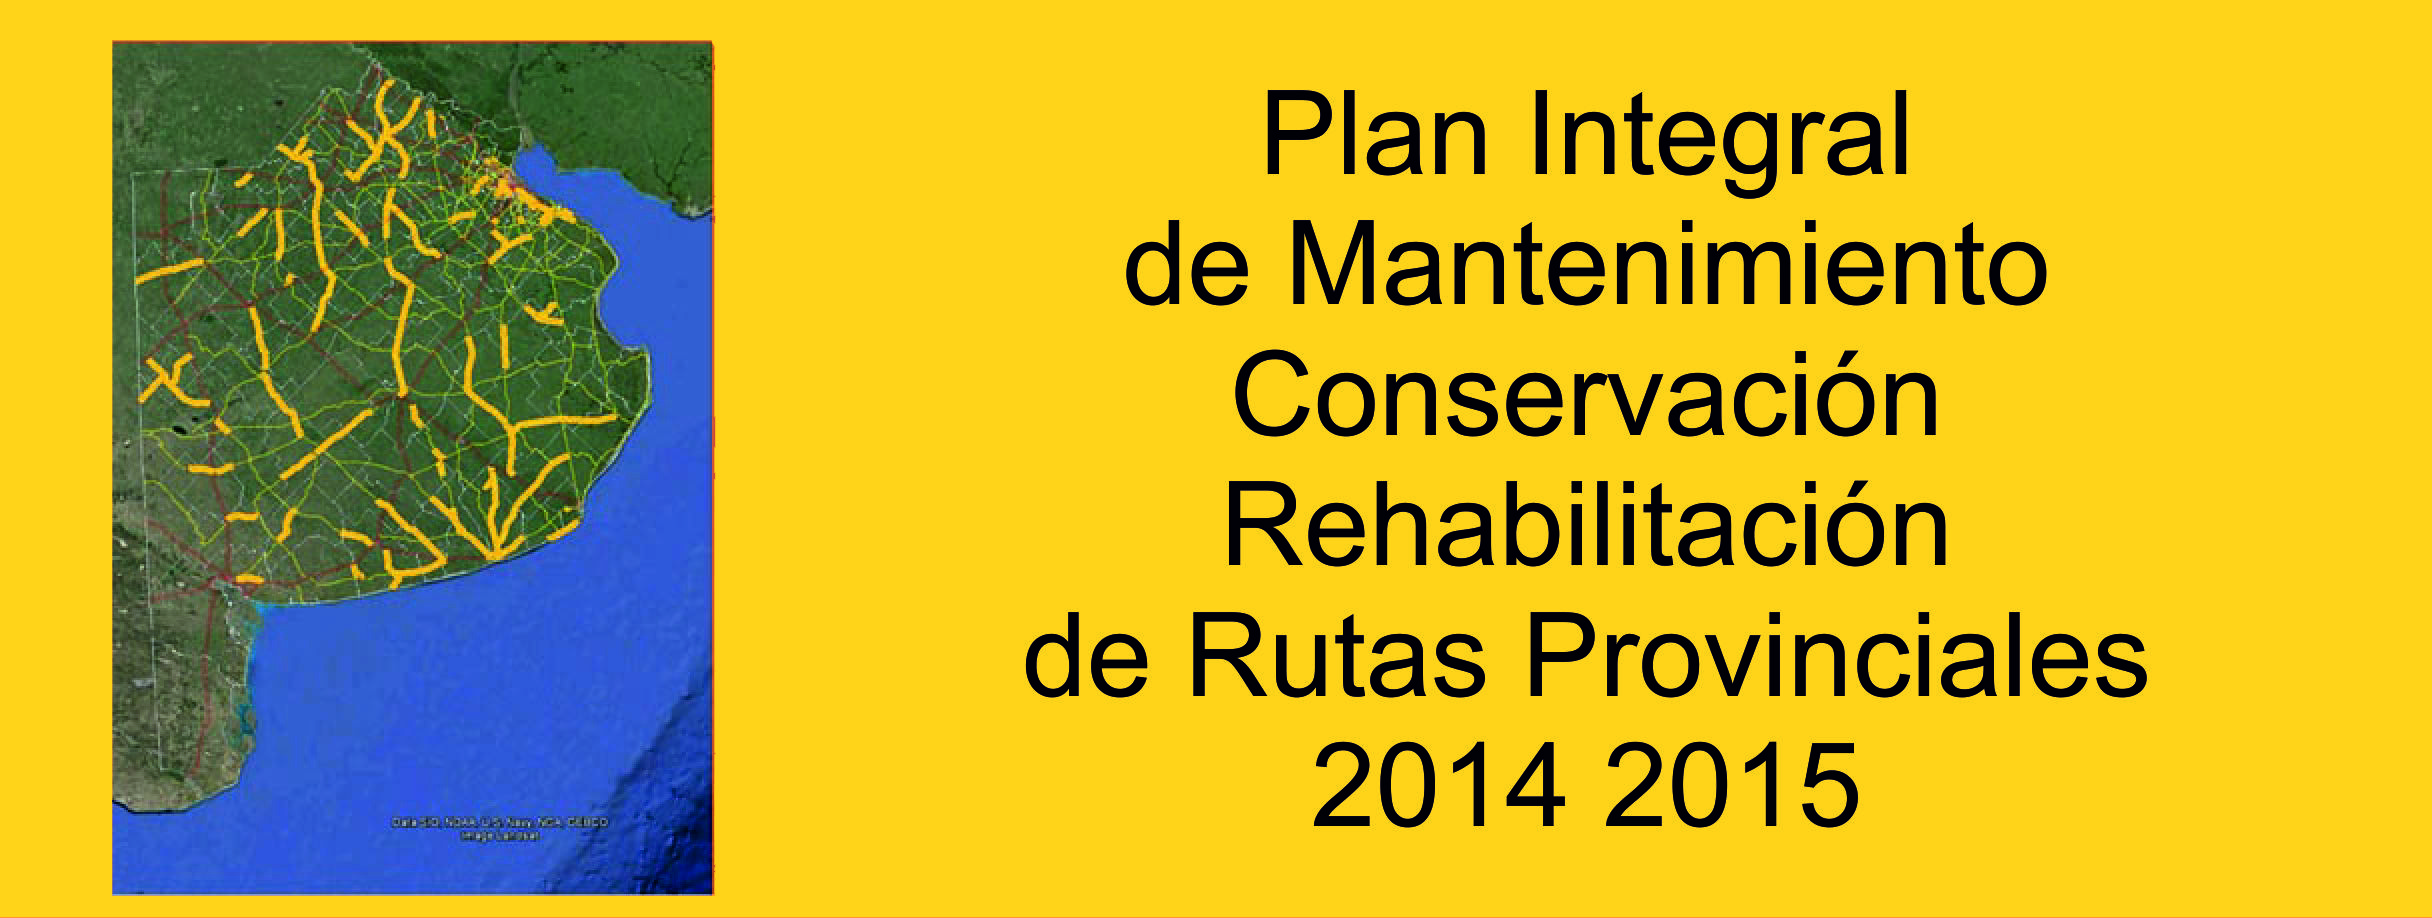 Plan intergal de mantenimiento